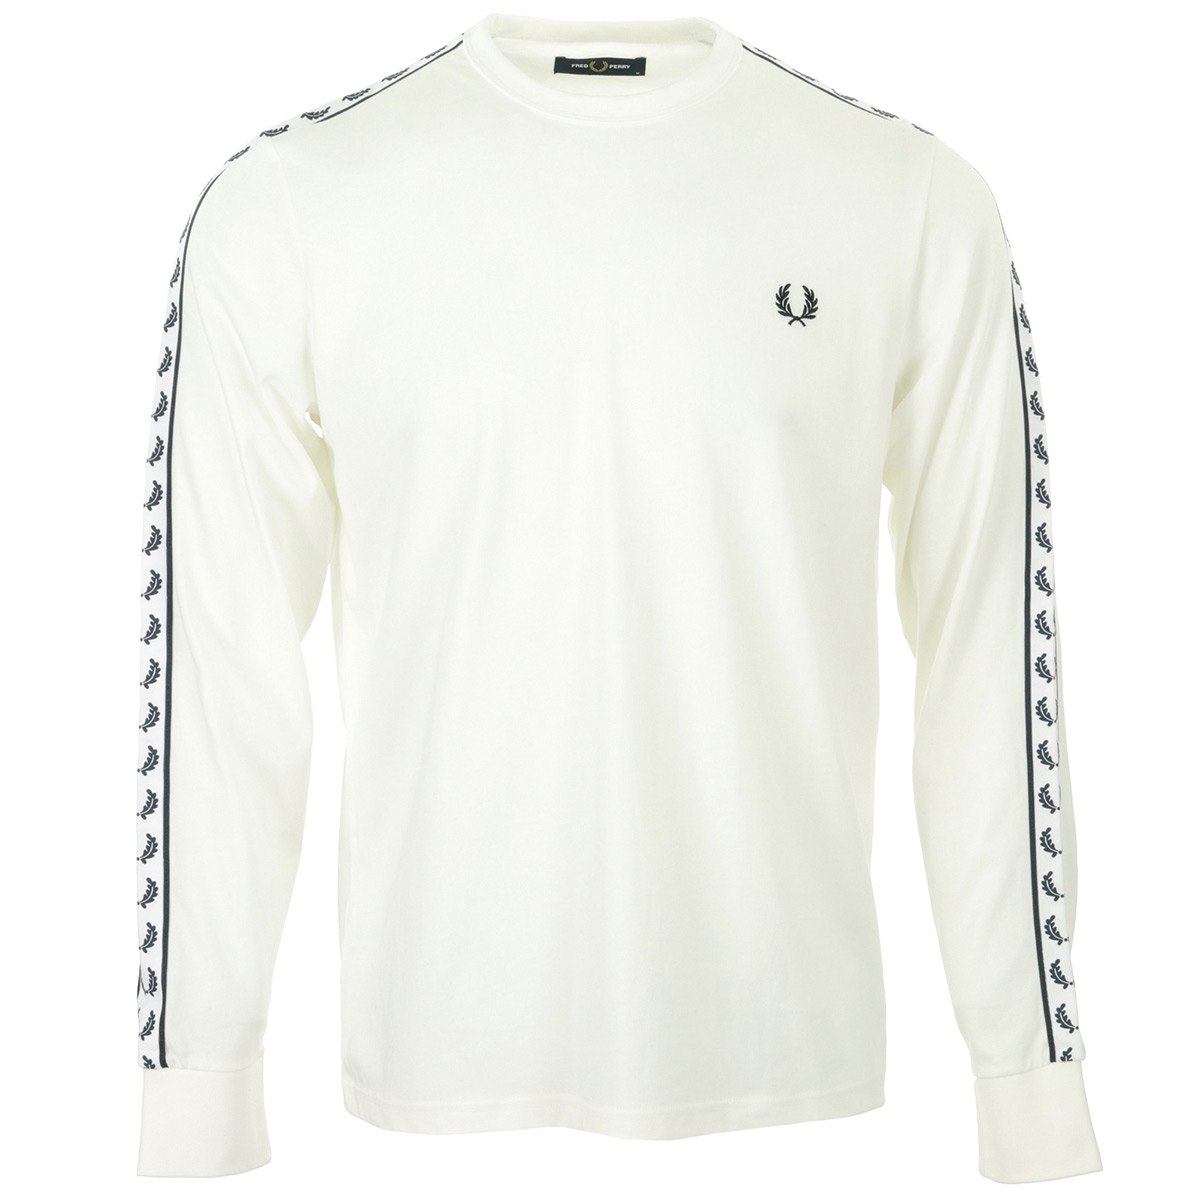 Fred Perry Taped Long Sleeve T-Shirt